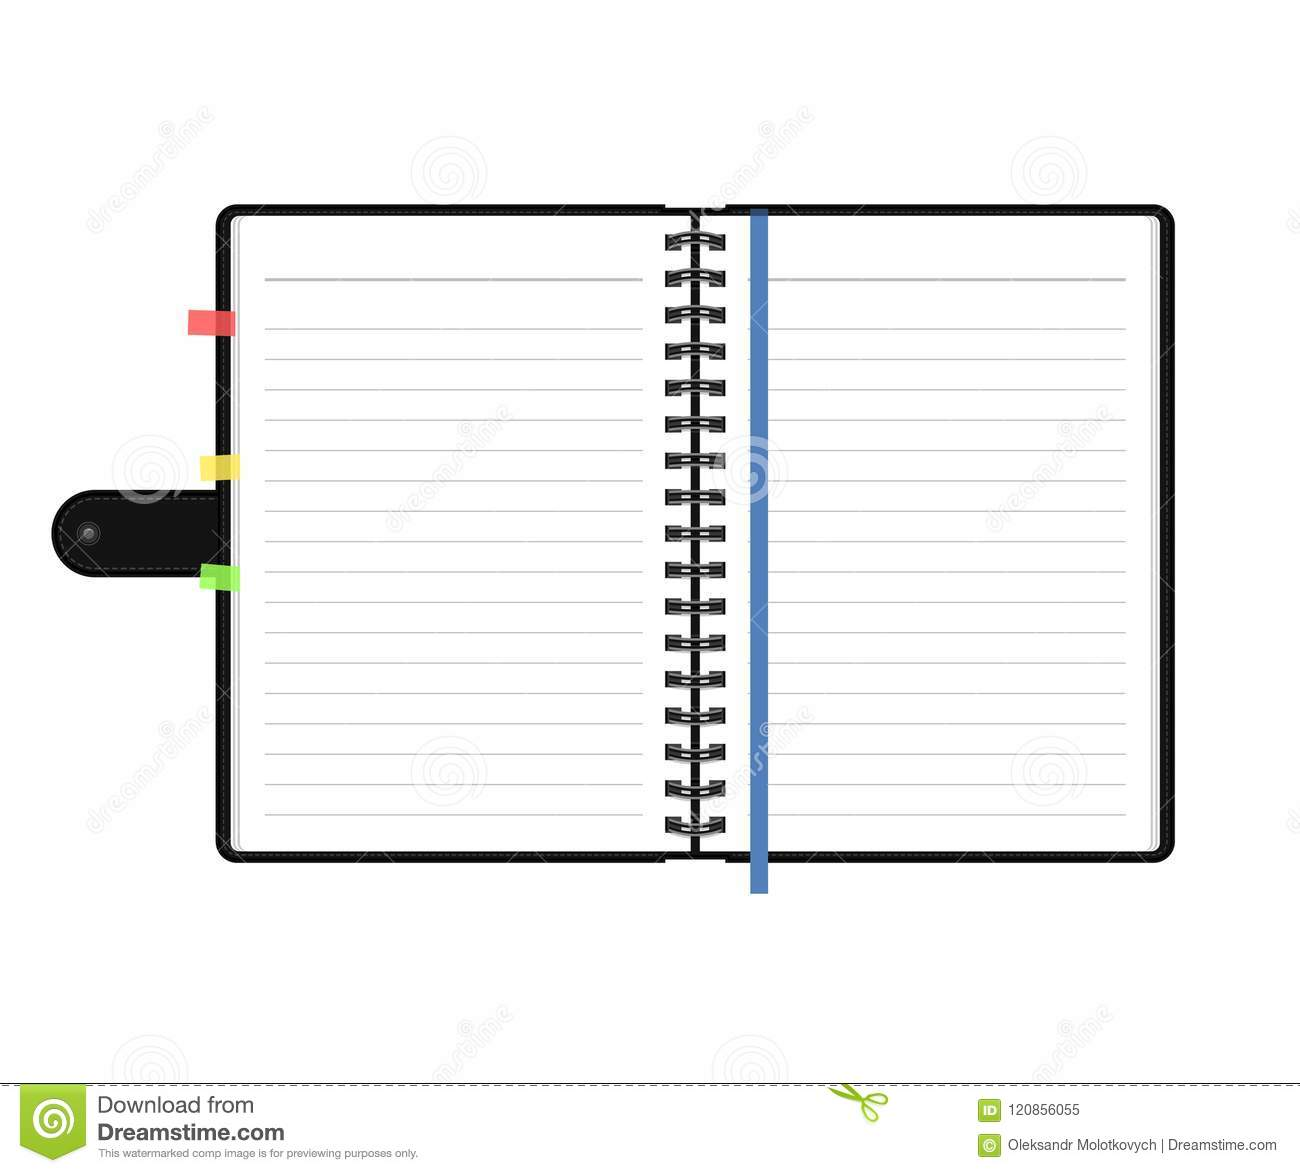 open diary or personal organizer with empty pages isolated on white